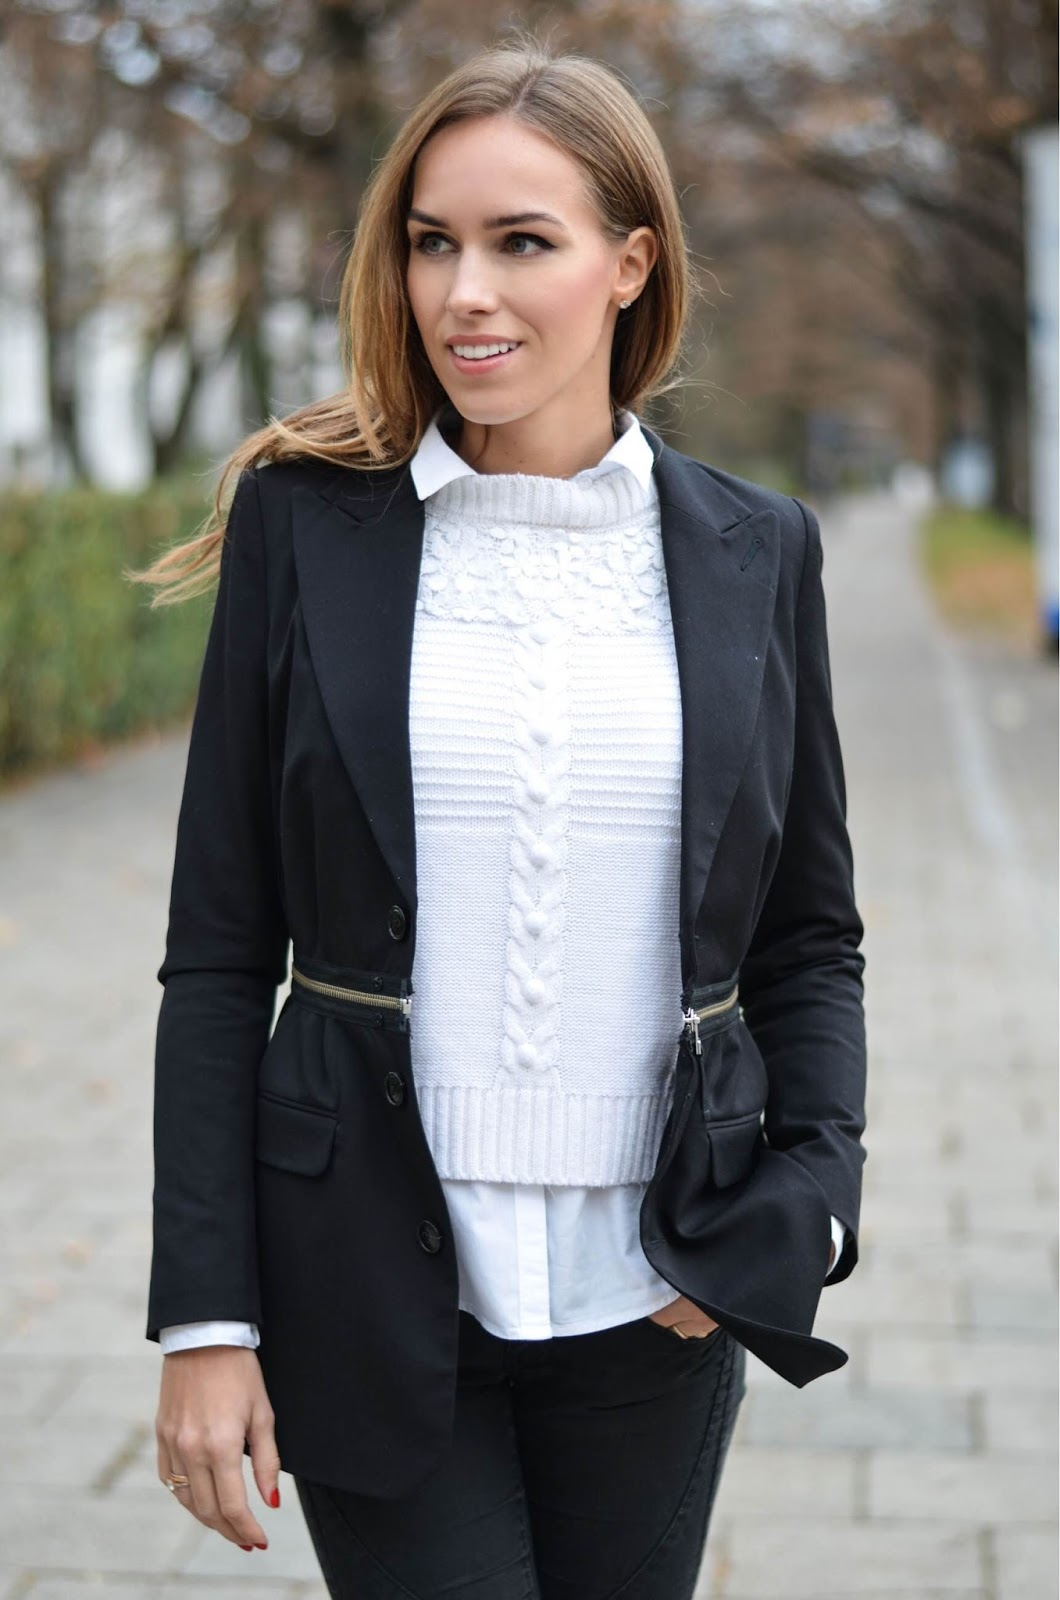 kristjaana mere black blazer white sweater casual fall outfit